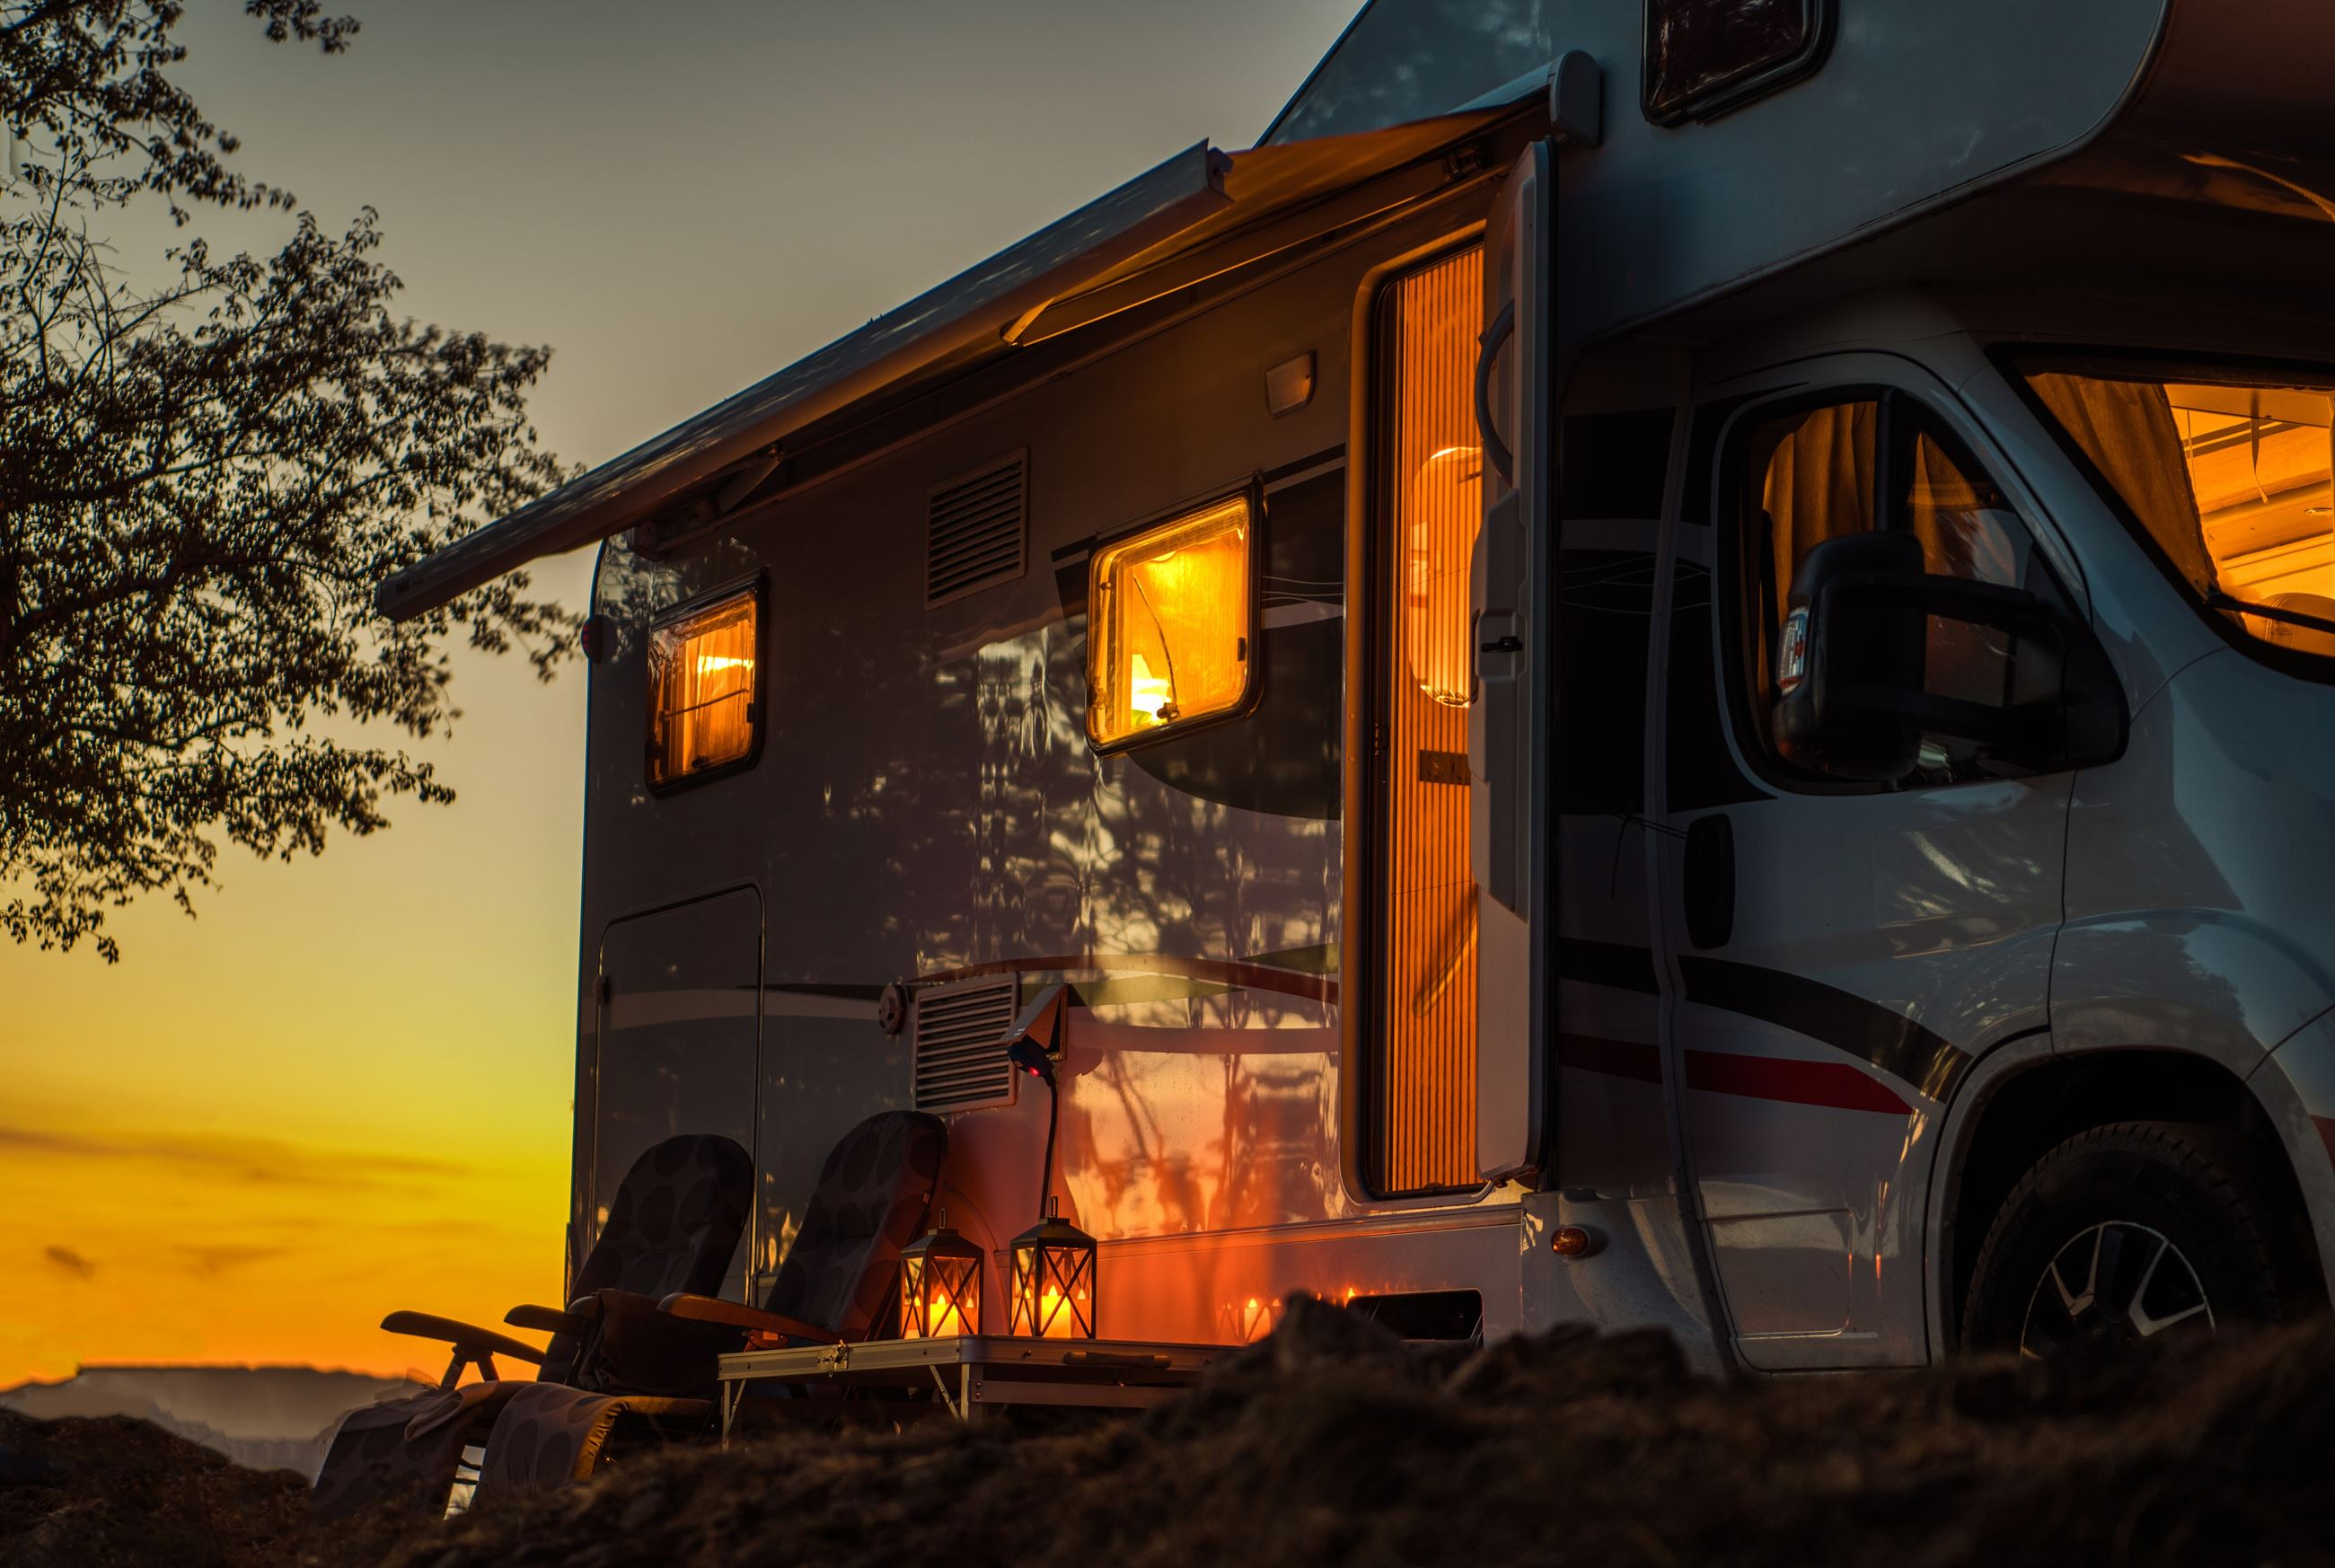 Sunset RV Campsite